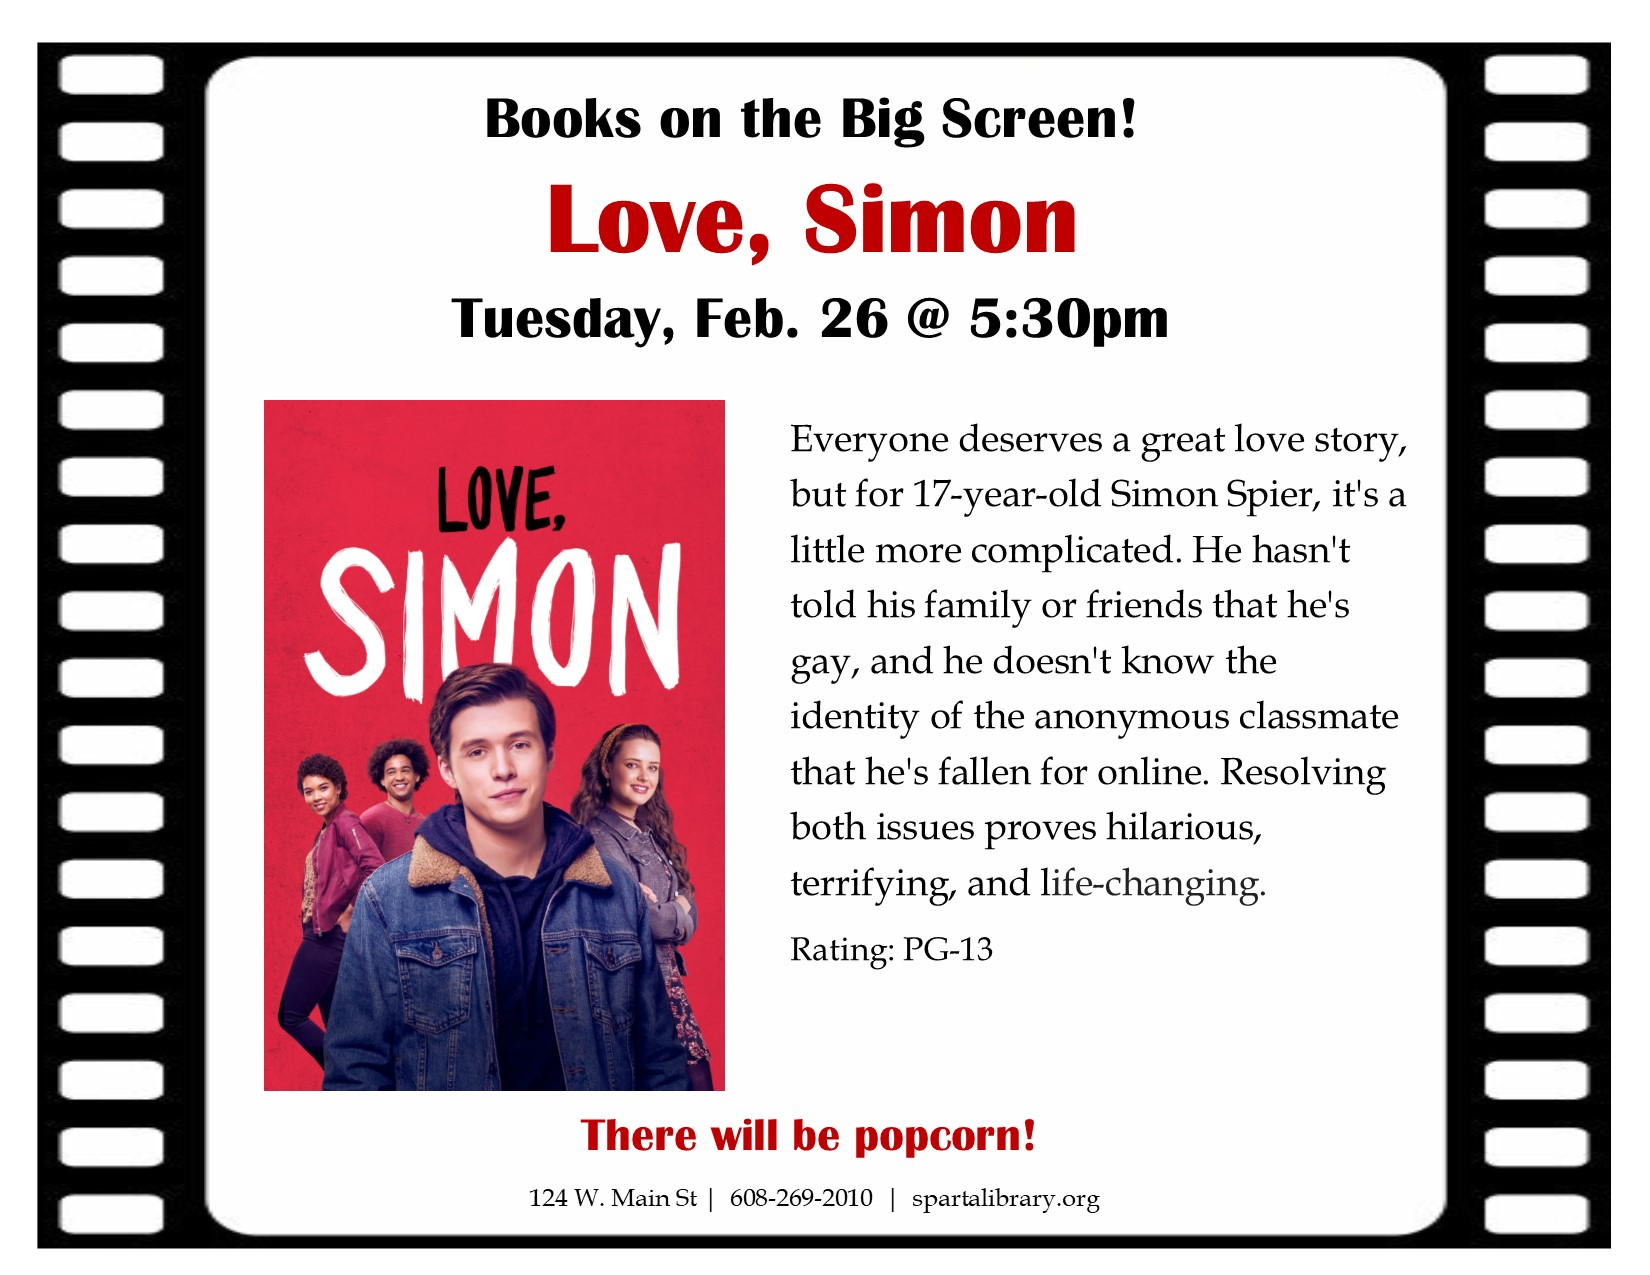 Books on the Big Screen: Love, Simon @ Sparta Free Library